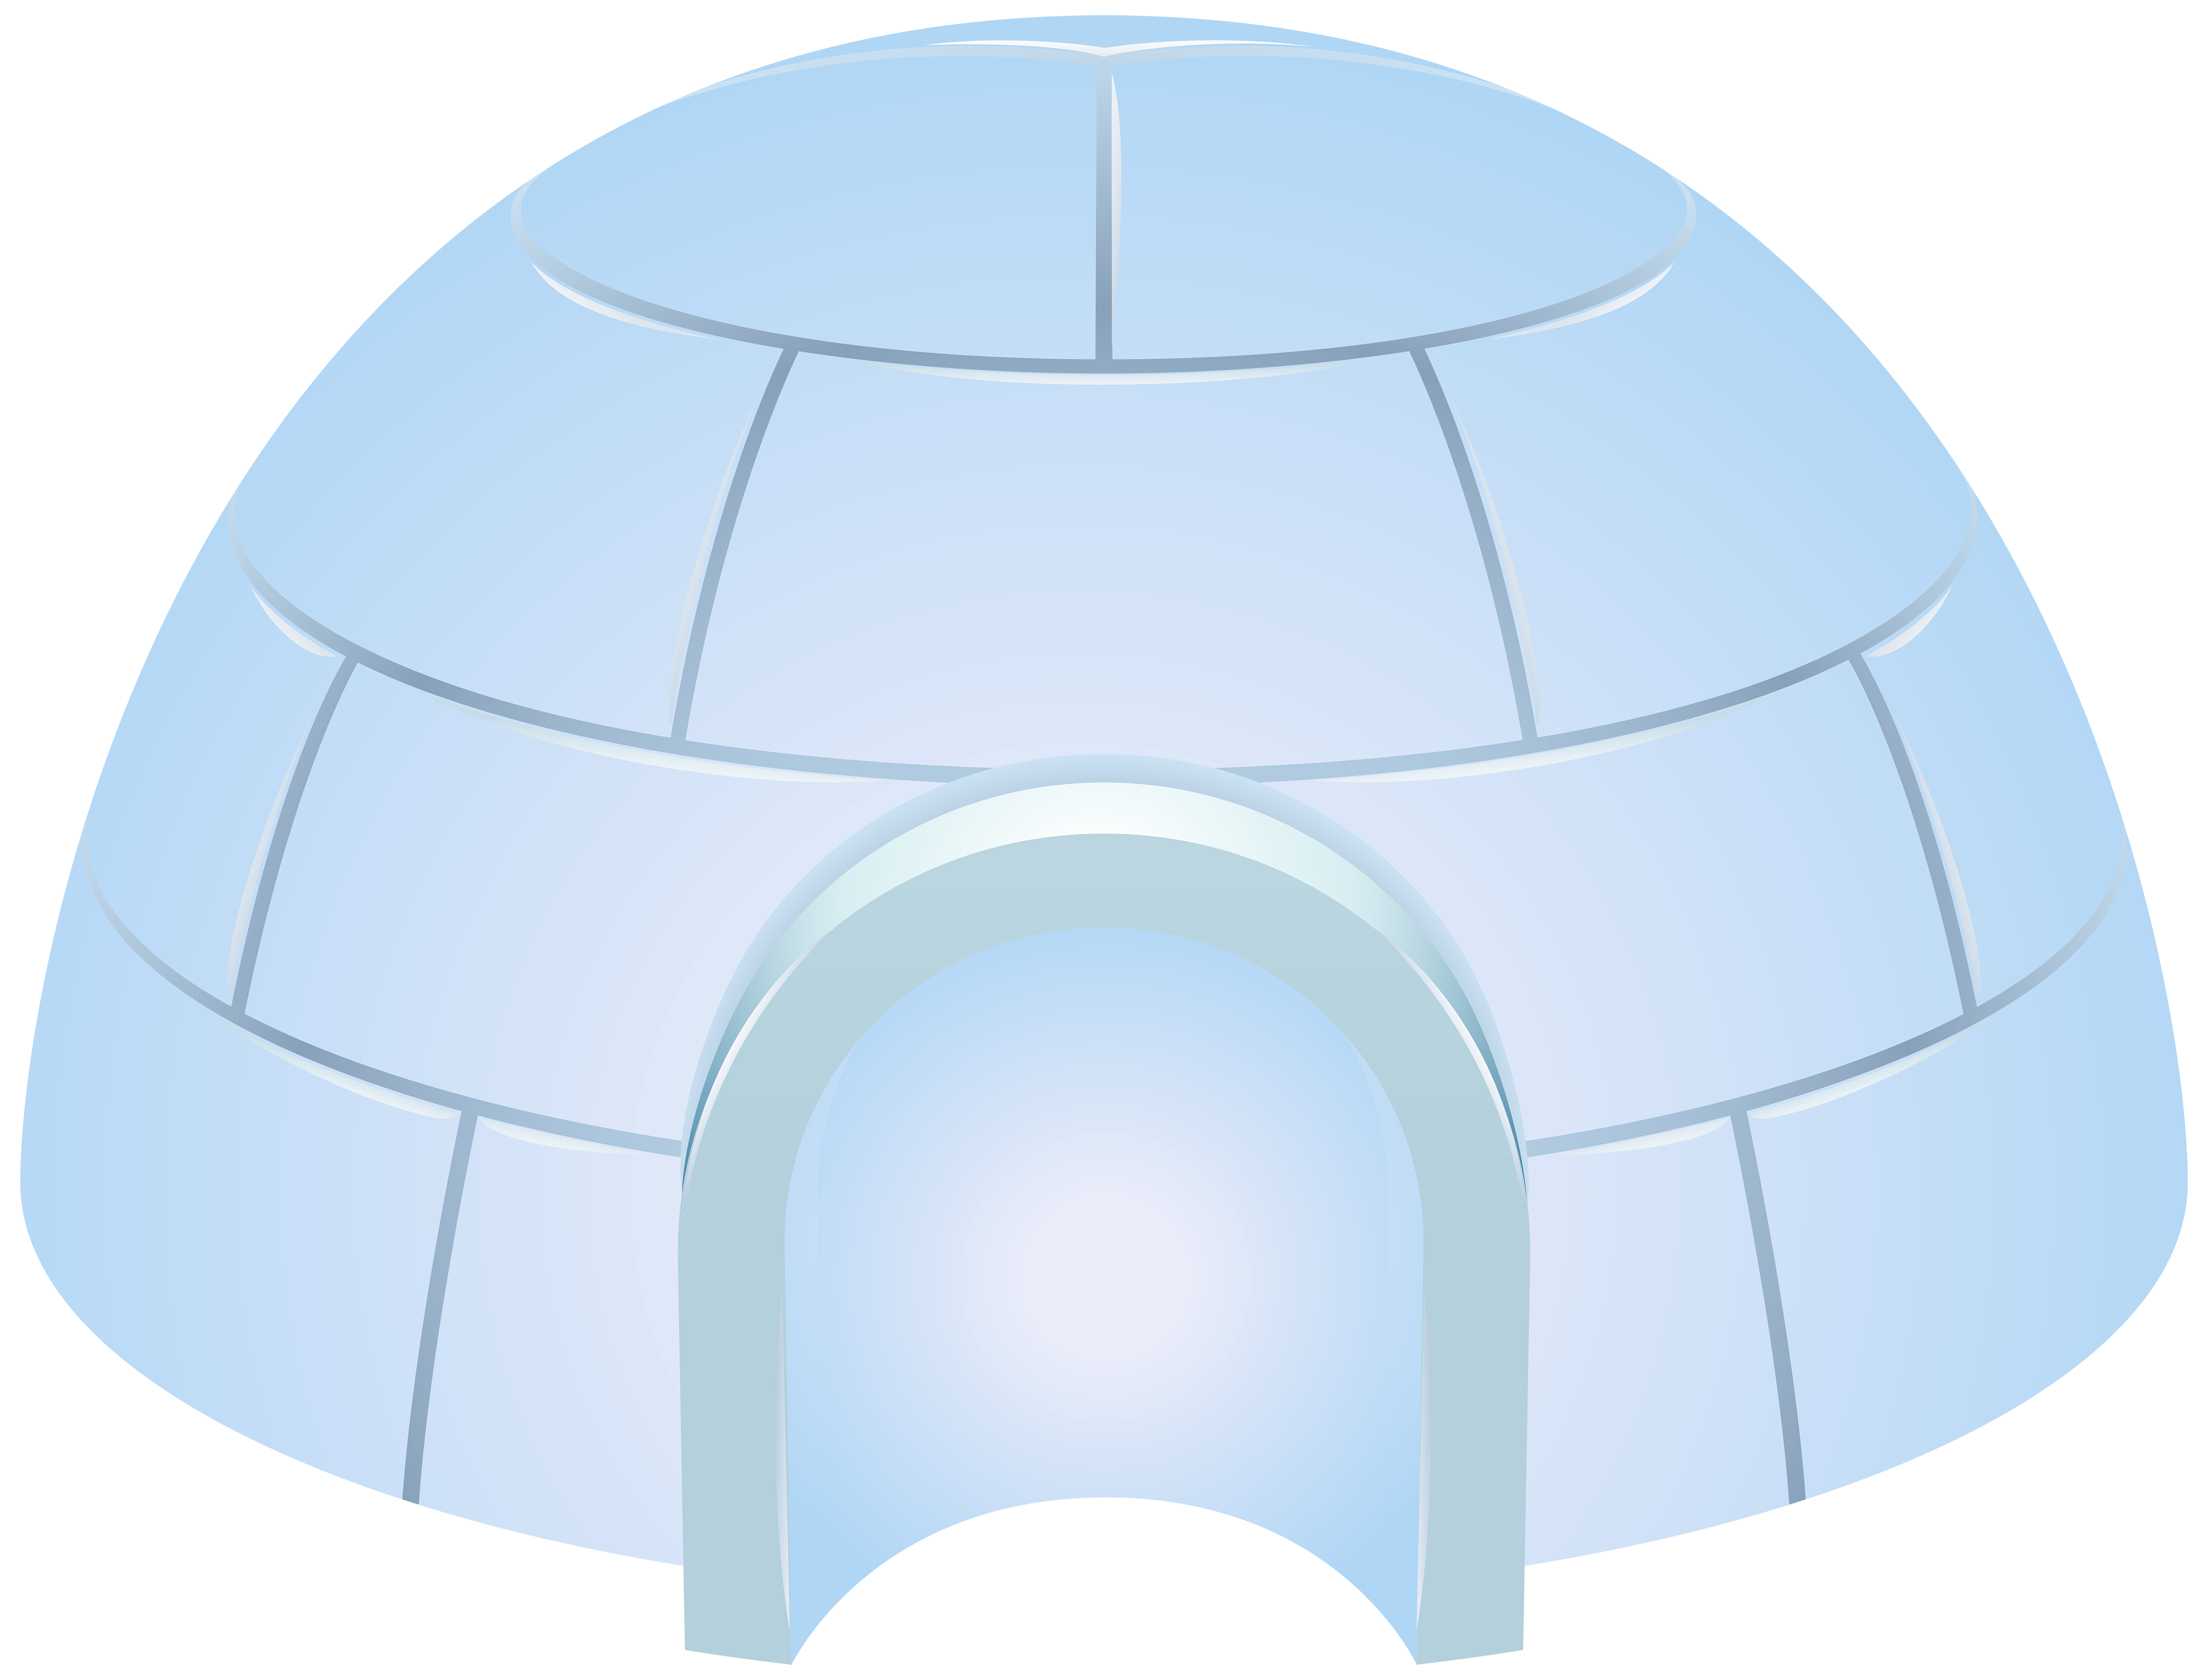 Igloo clipart transparent background. Icehouse png clip art